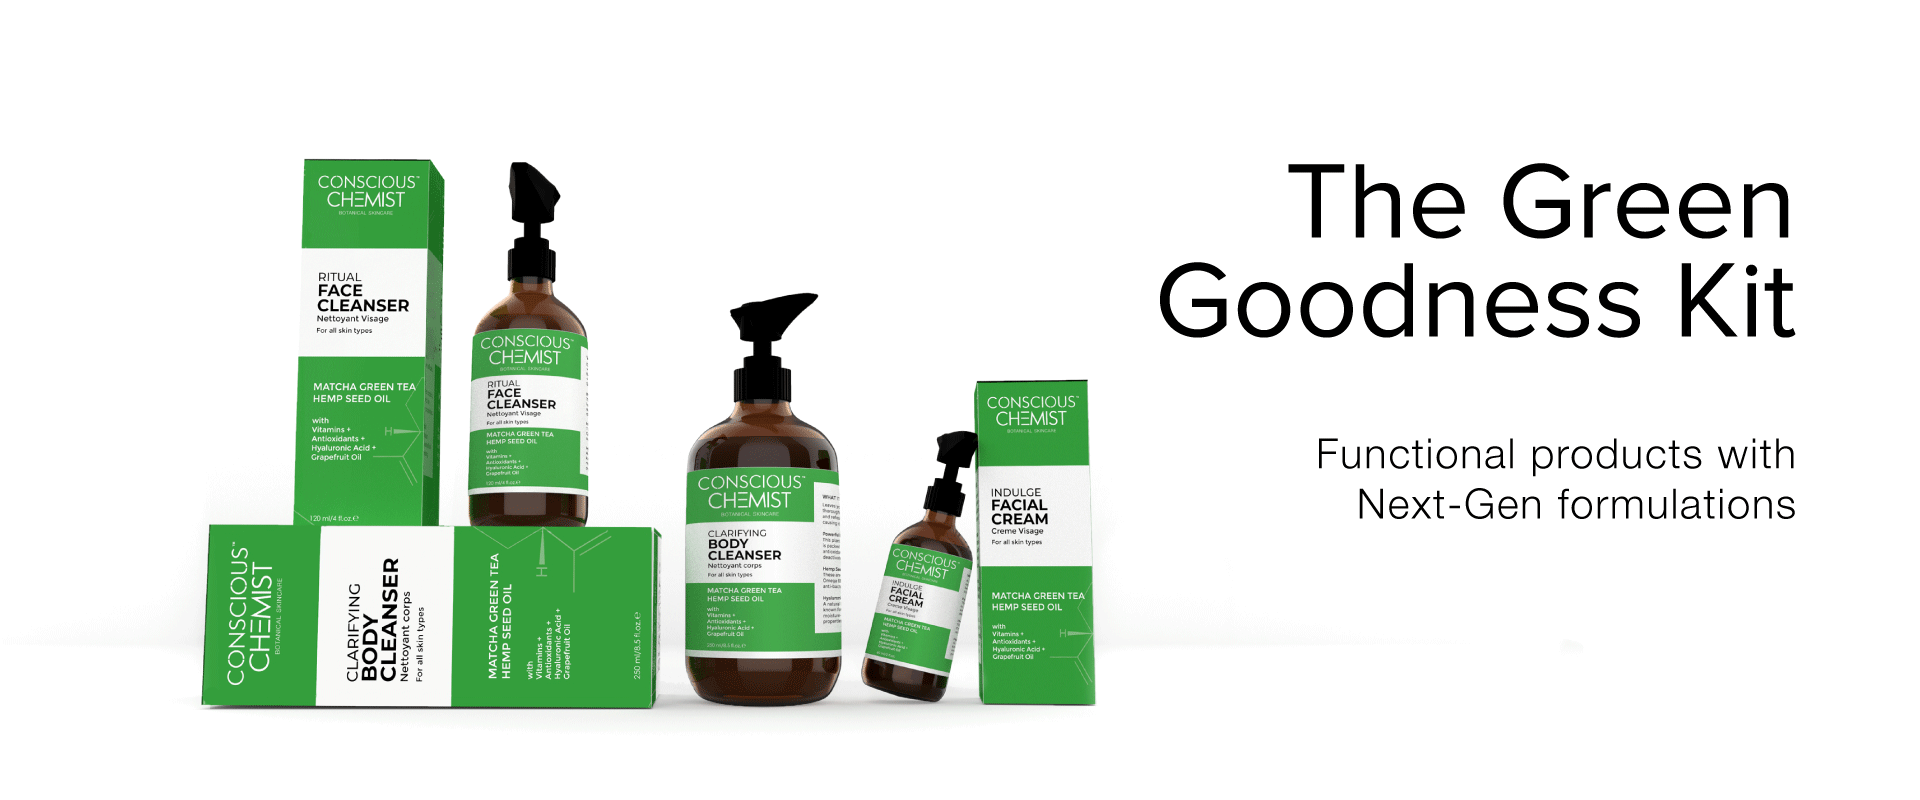 The green goodness kit is the ultimate beauty regime conatining Next-Gen ingredients and formulations